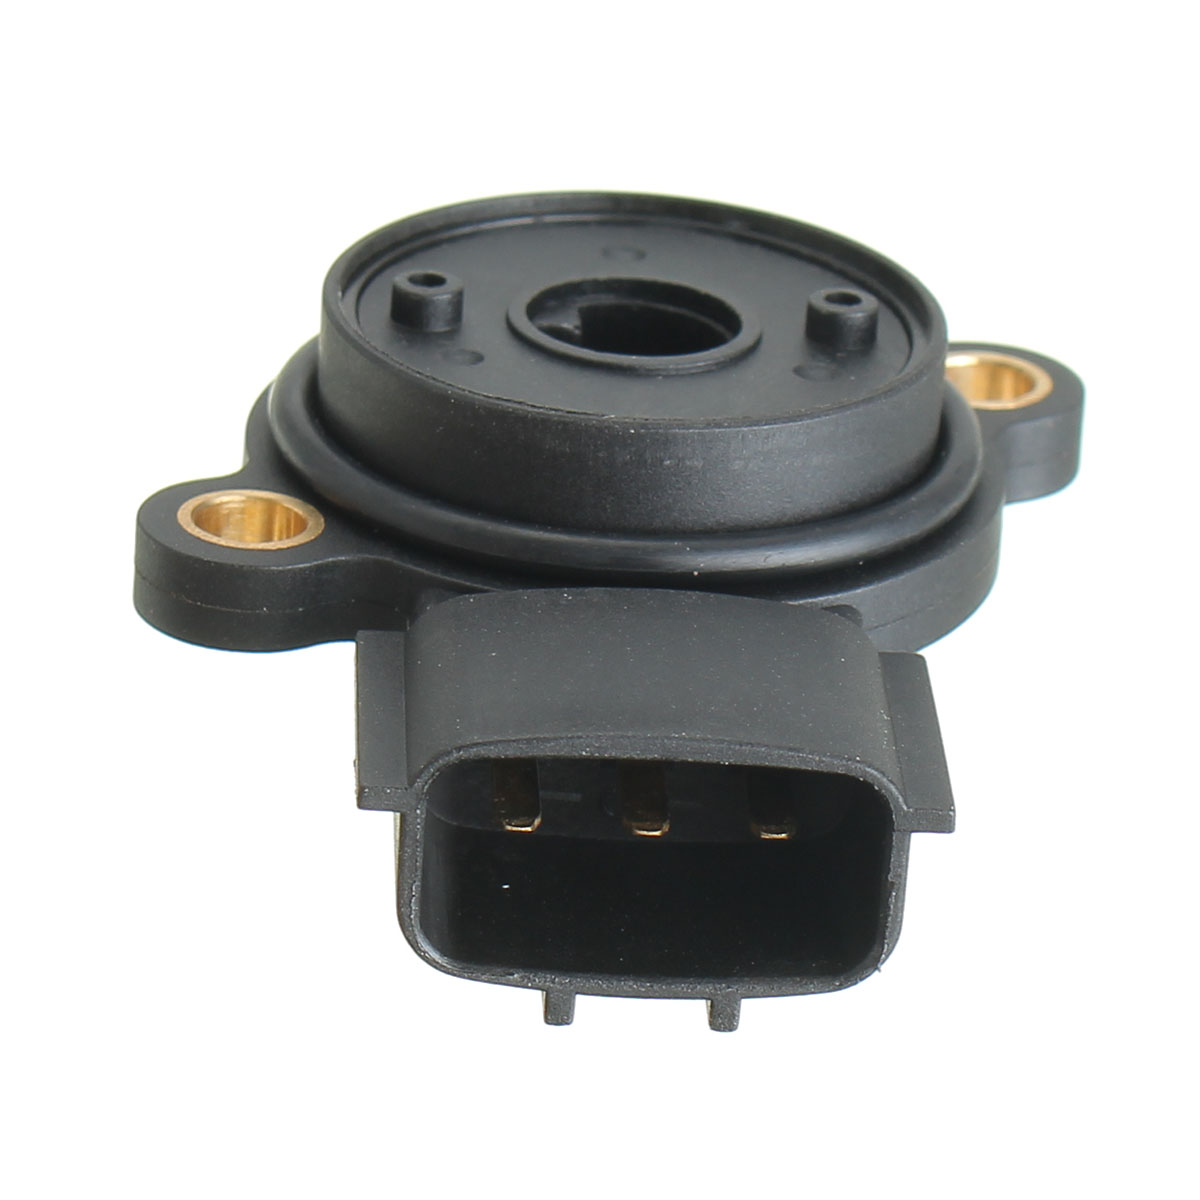 Angle Sensor With O Ring For Honda Trx500fa Trx400fa Fga Rancher 400 06380 Hn2 305 Alex Nld